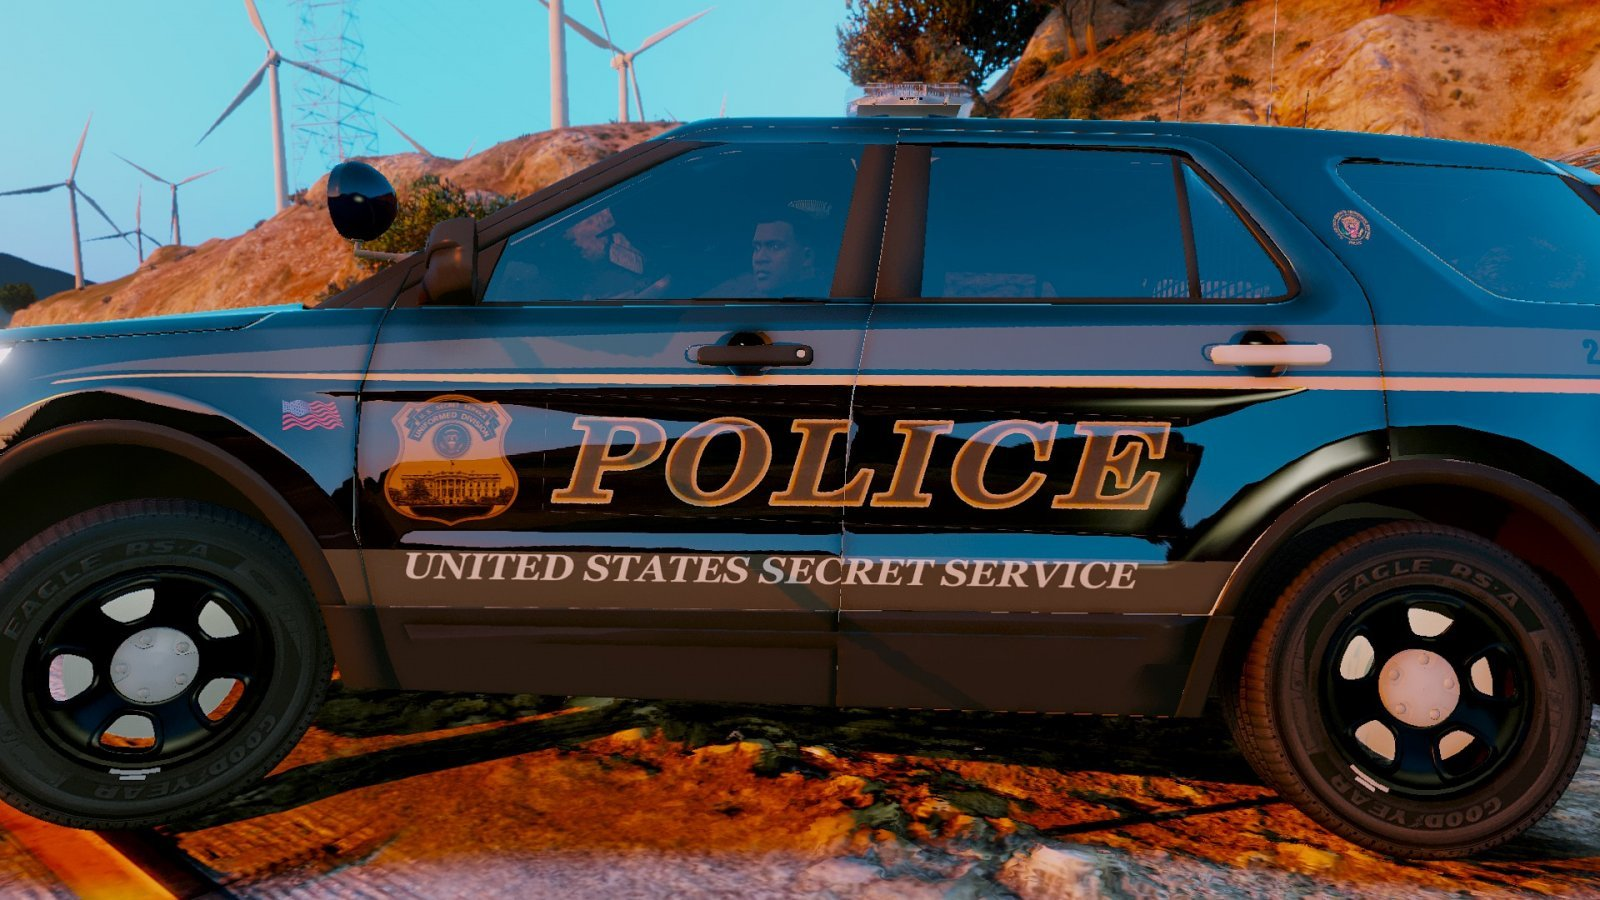 US Secret Service Uniformed Division Pack   Vehicle Textures 1600x900